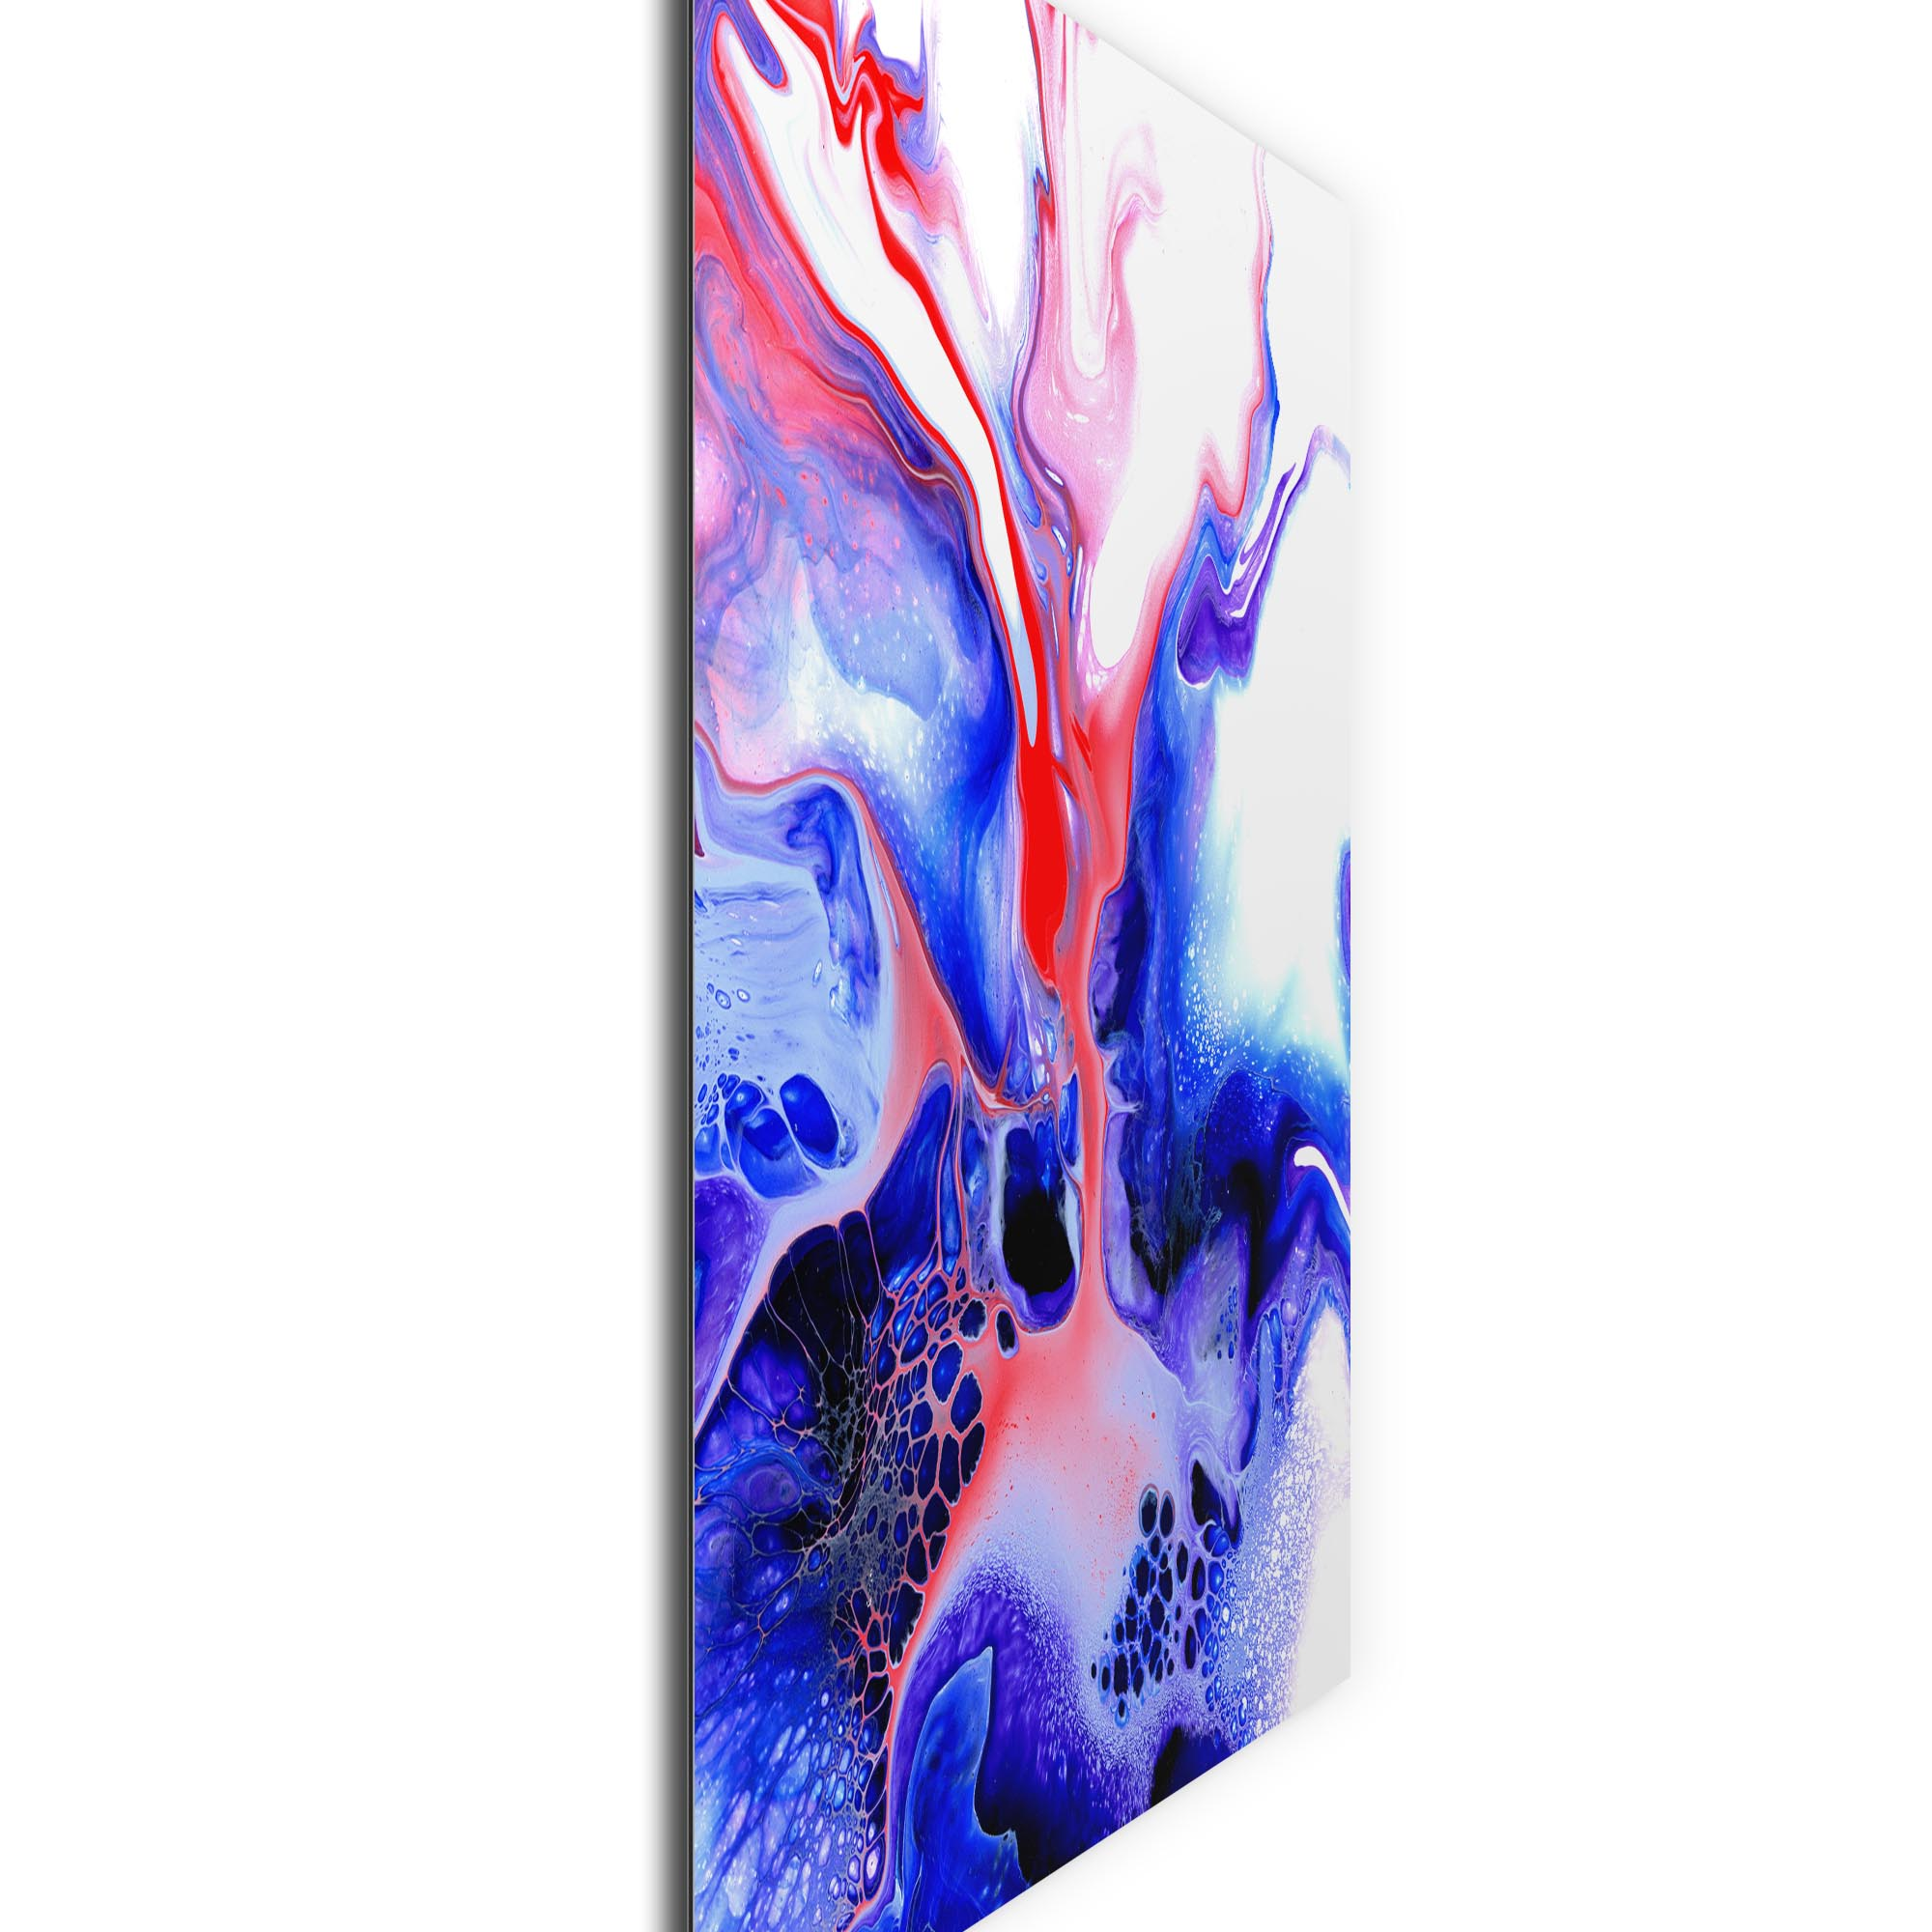 Thermal by Elana Reiter - Abstract Wall Art, Modern Home Decor (36in x 36in) - Image 2